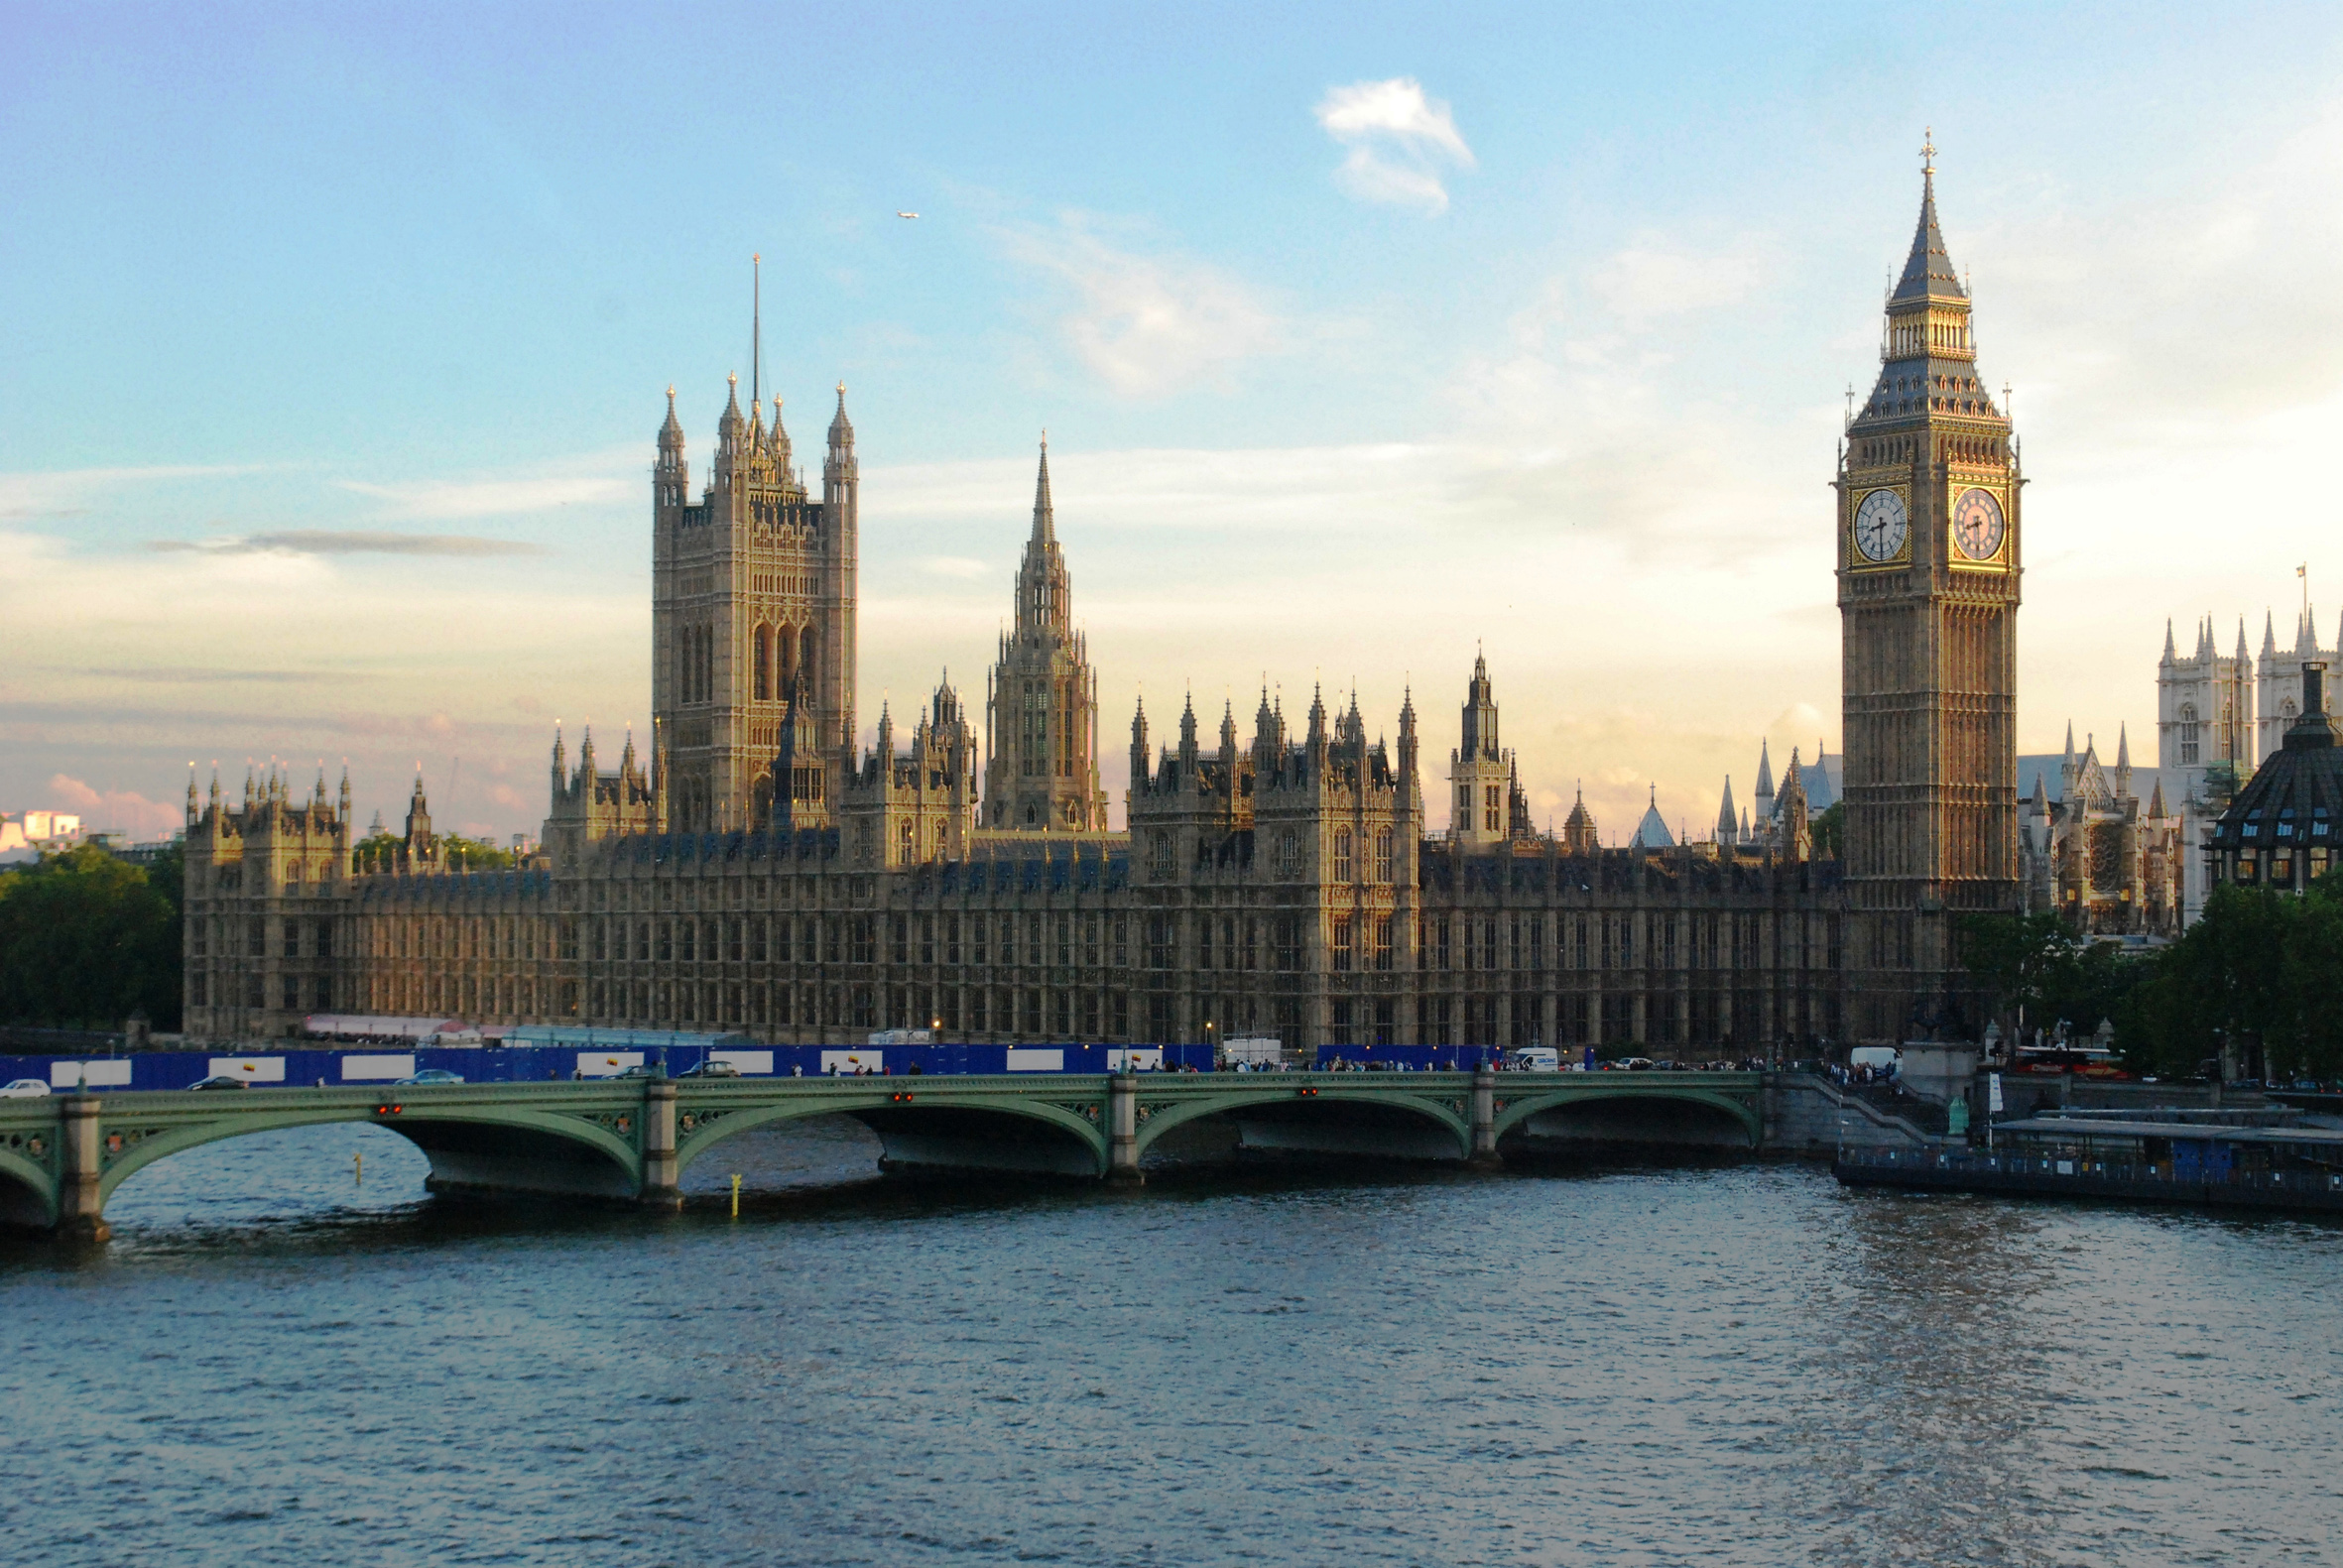 UK MPs seek sanctions on Chinese leaders responsible for gross abuses in Tibet, Xinjiang